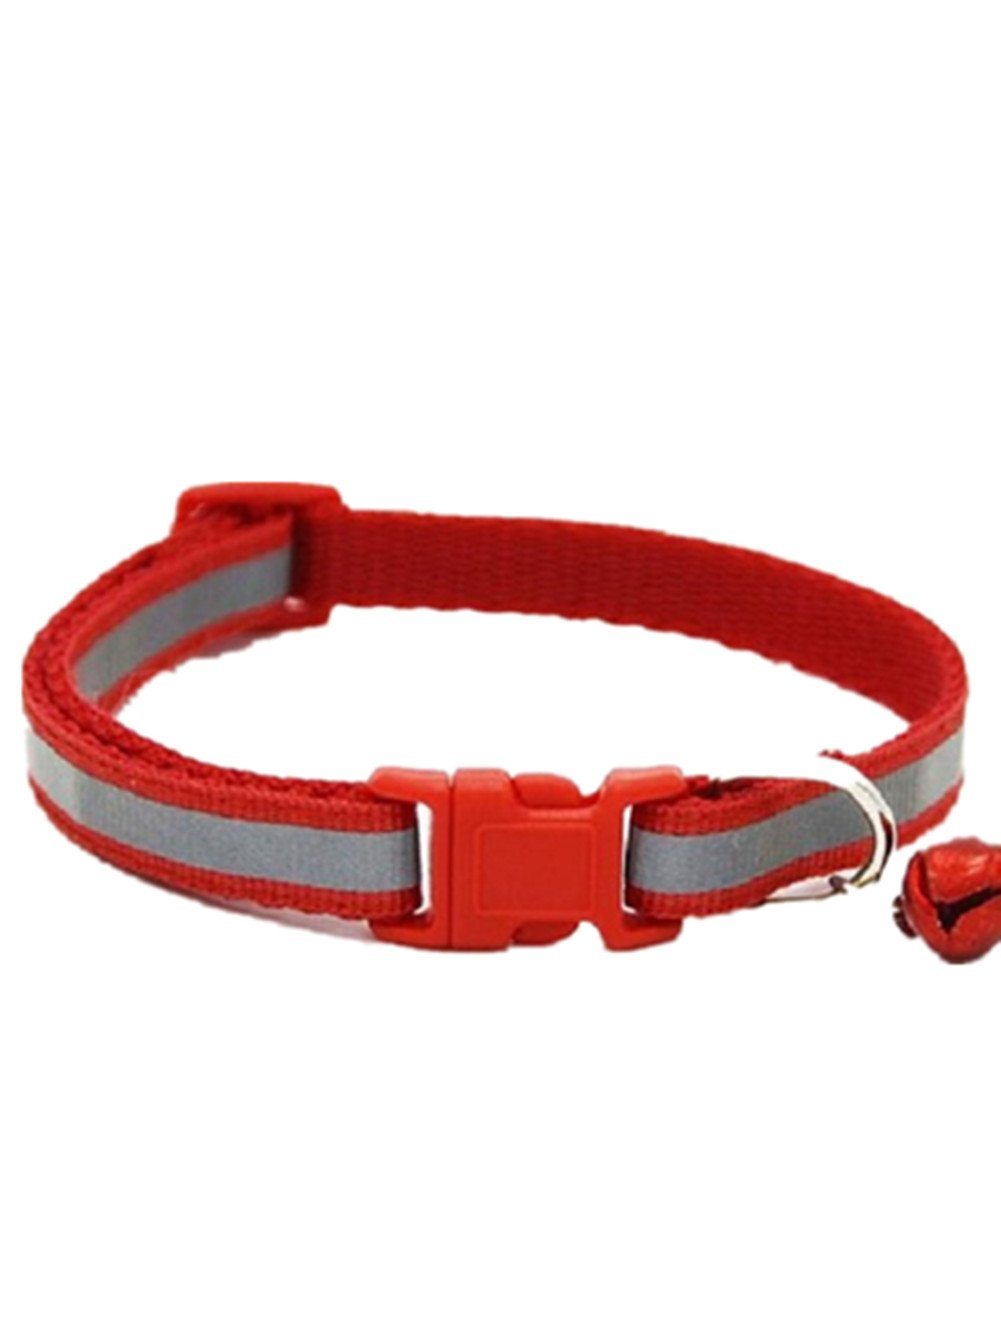 Da.Wa Reflective Pet Small Medium Size Dog Cat Adjustable Collar with Bell Gift (Red)